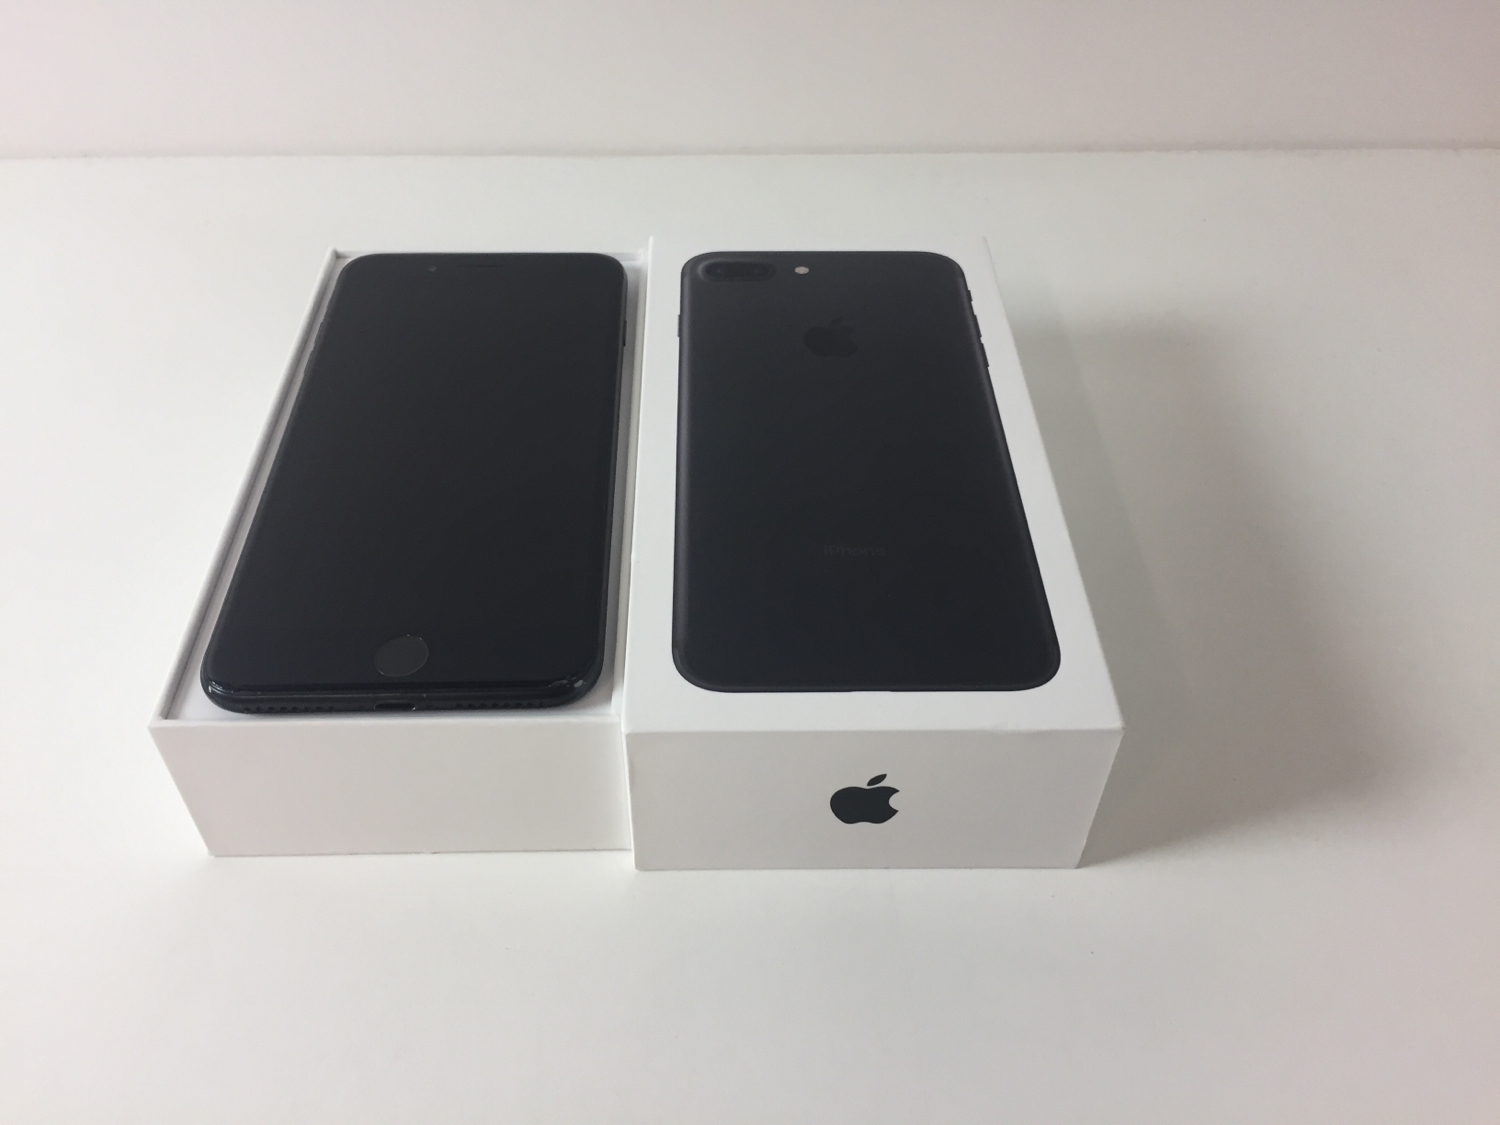 iPhone 7 Plus 256GB, 256GB, Black, imagen 1